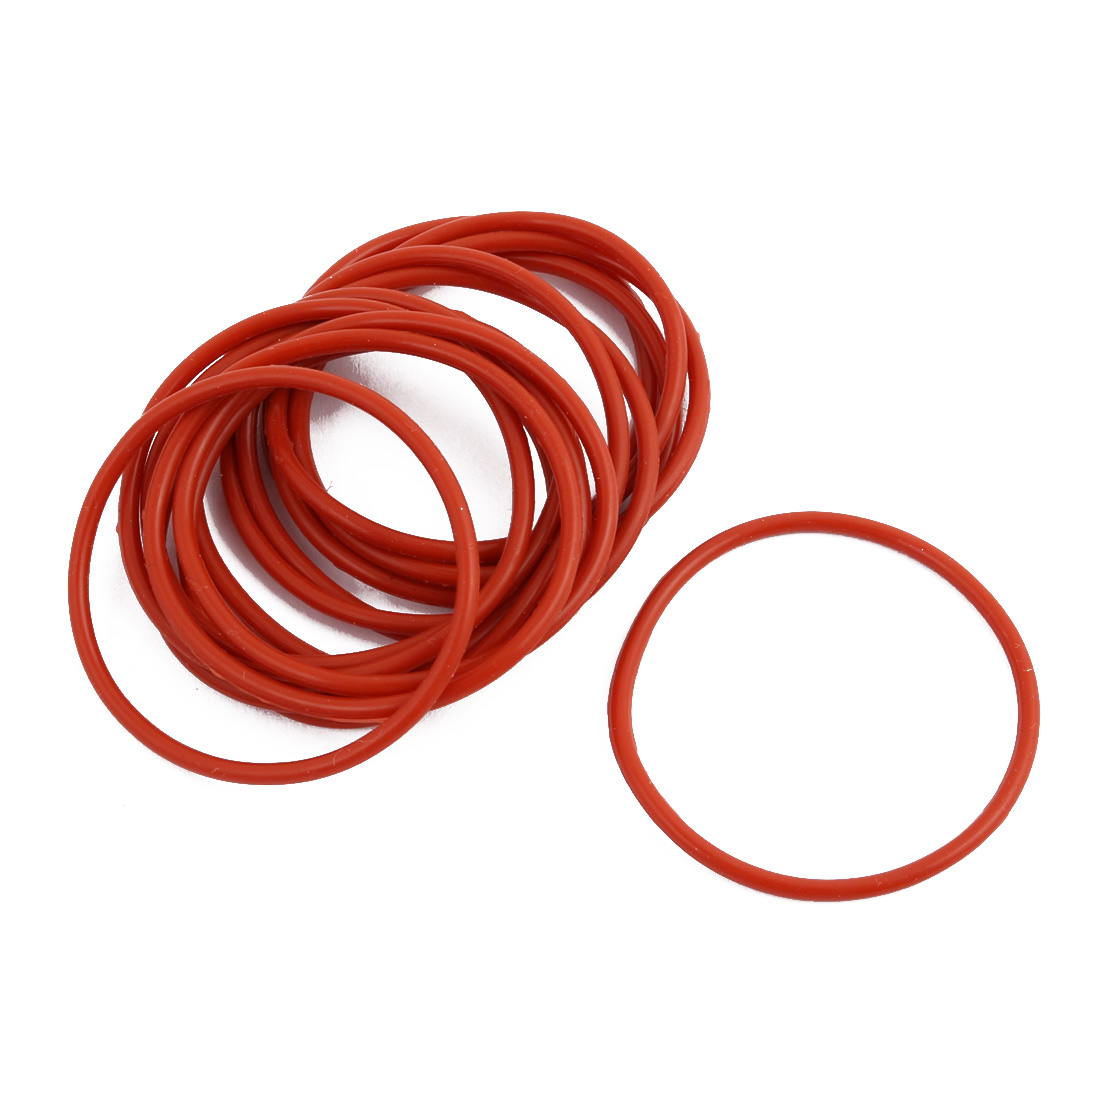 15pcs Red Round Nitrile Butadiene Rubber NBR O-Ring 40mm OD 1.9mm Width